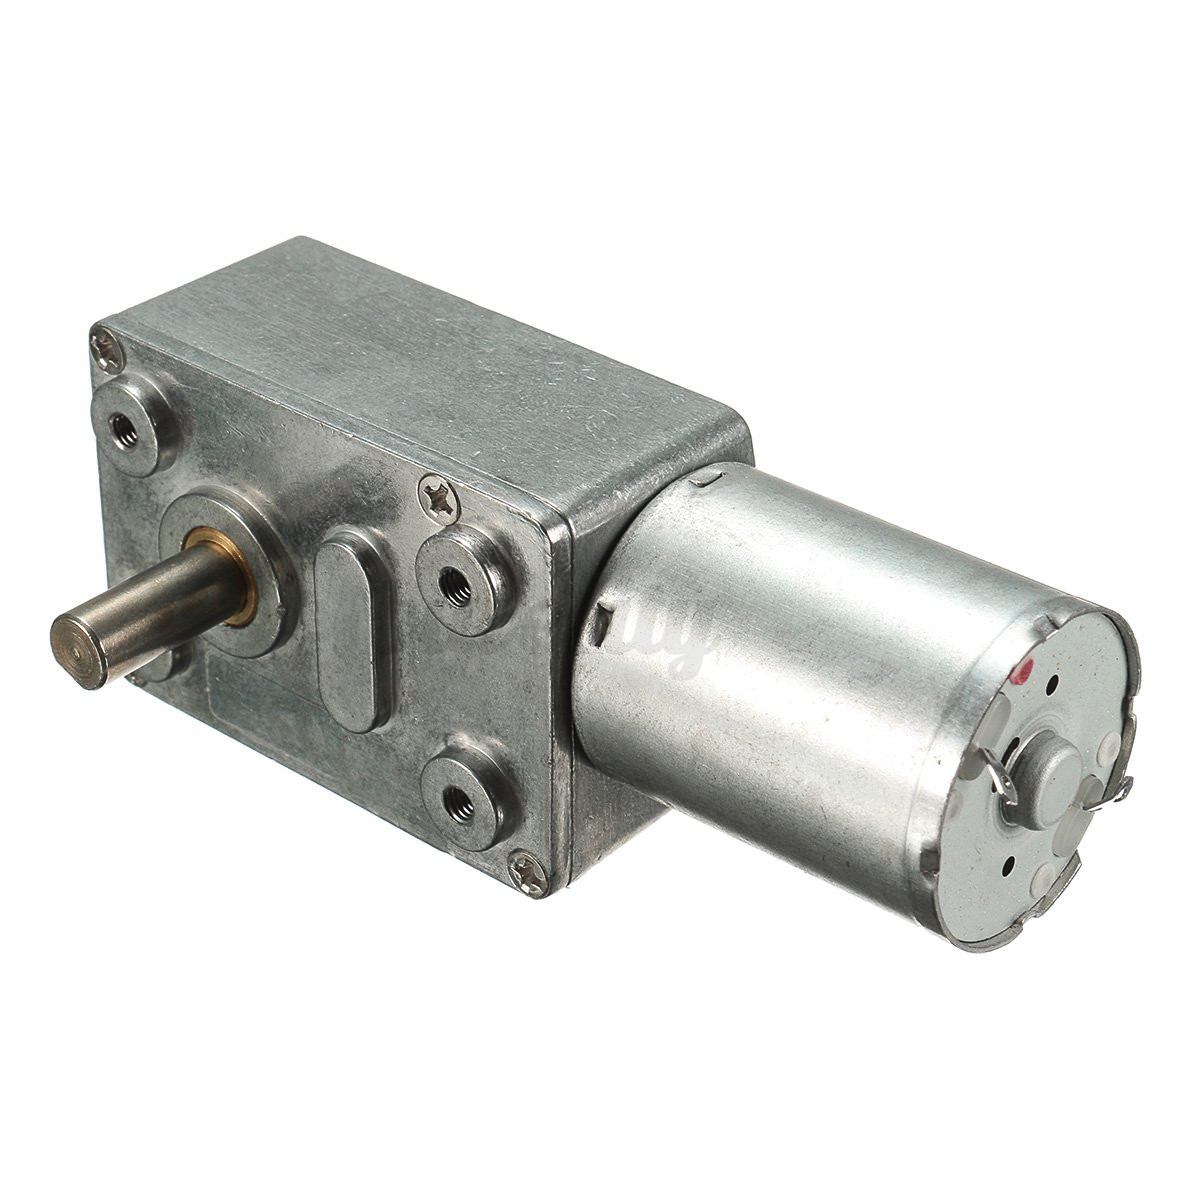 Dc 12v geared motor 0 6rpm low speed high torque turbo for Low speed dc motor 0 5 6 volt